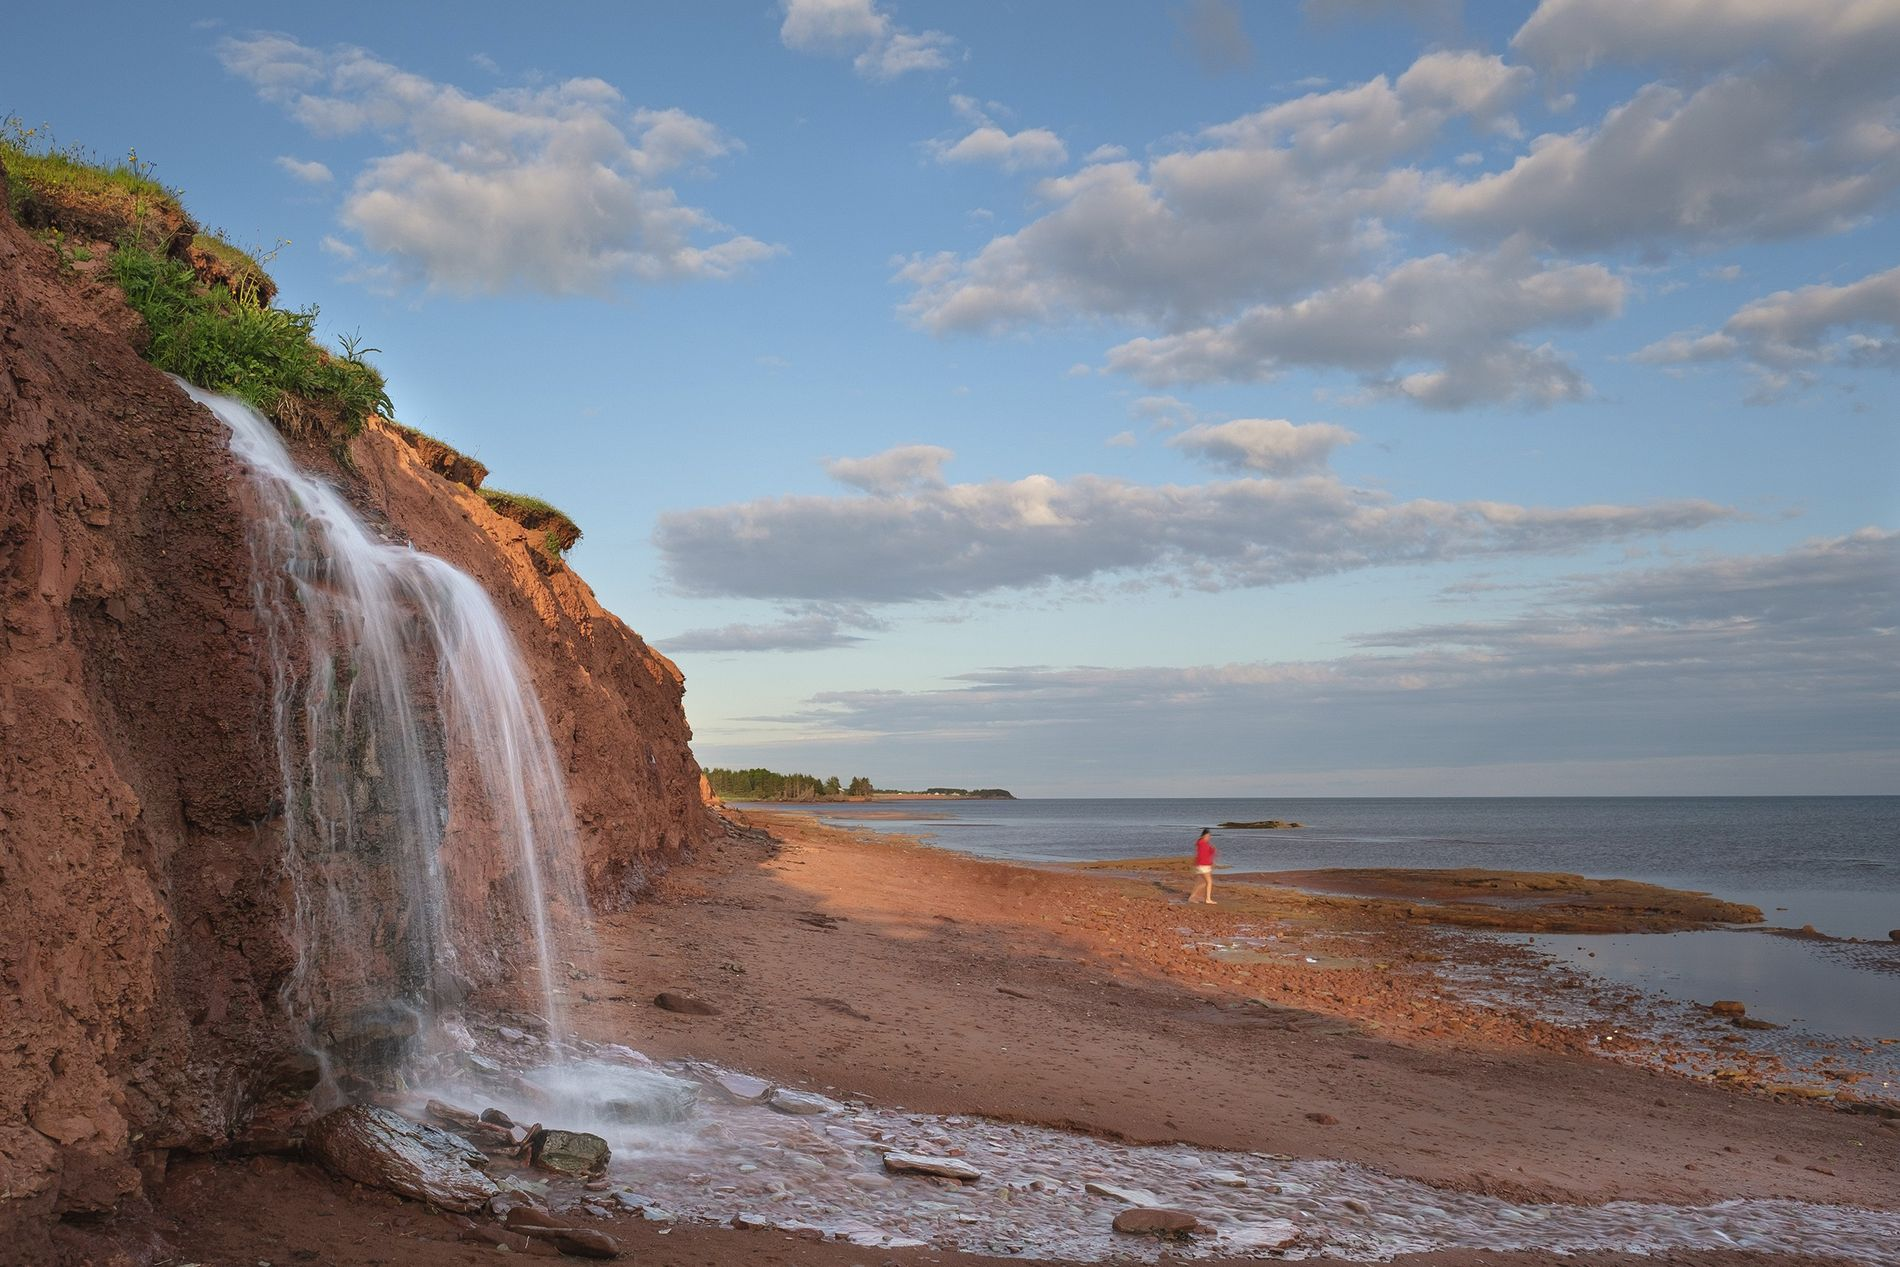 A spring flows out of a sandstone cliff, onto the beach, and into the Northumberland Strait ...